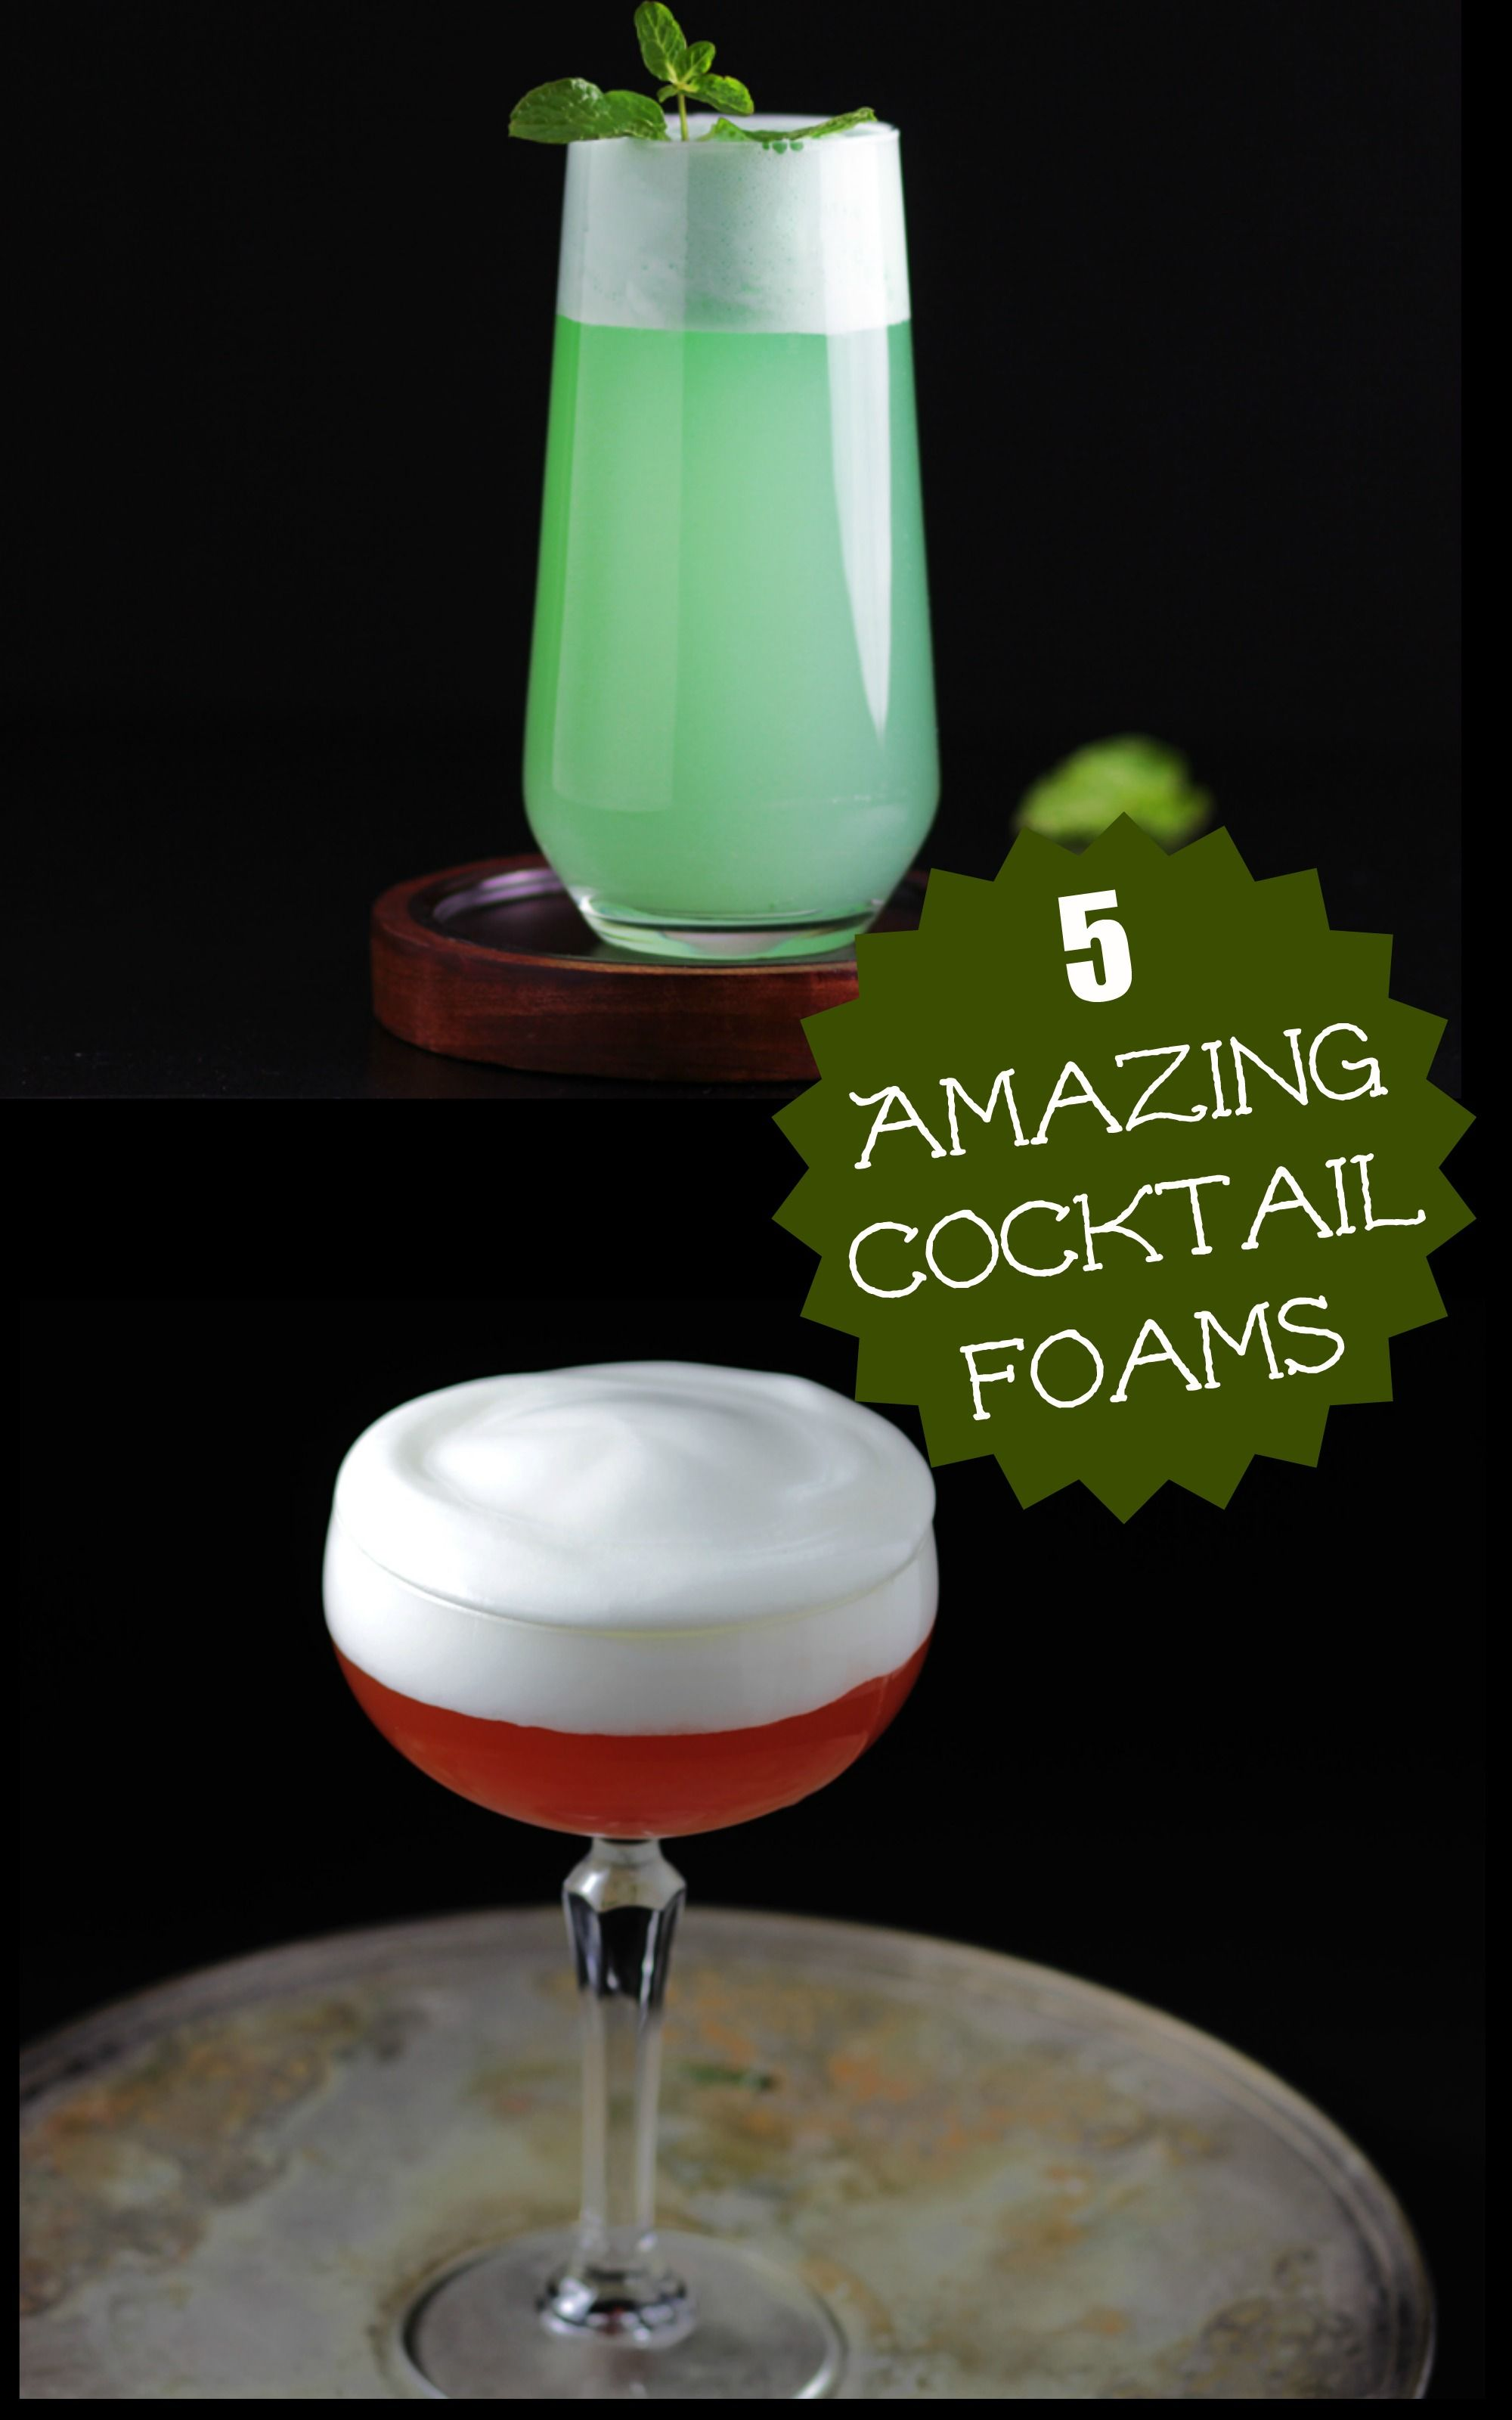 Cocktail Foams & Improving Your Cocktails